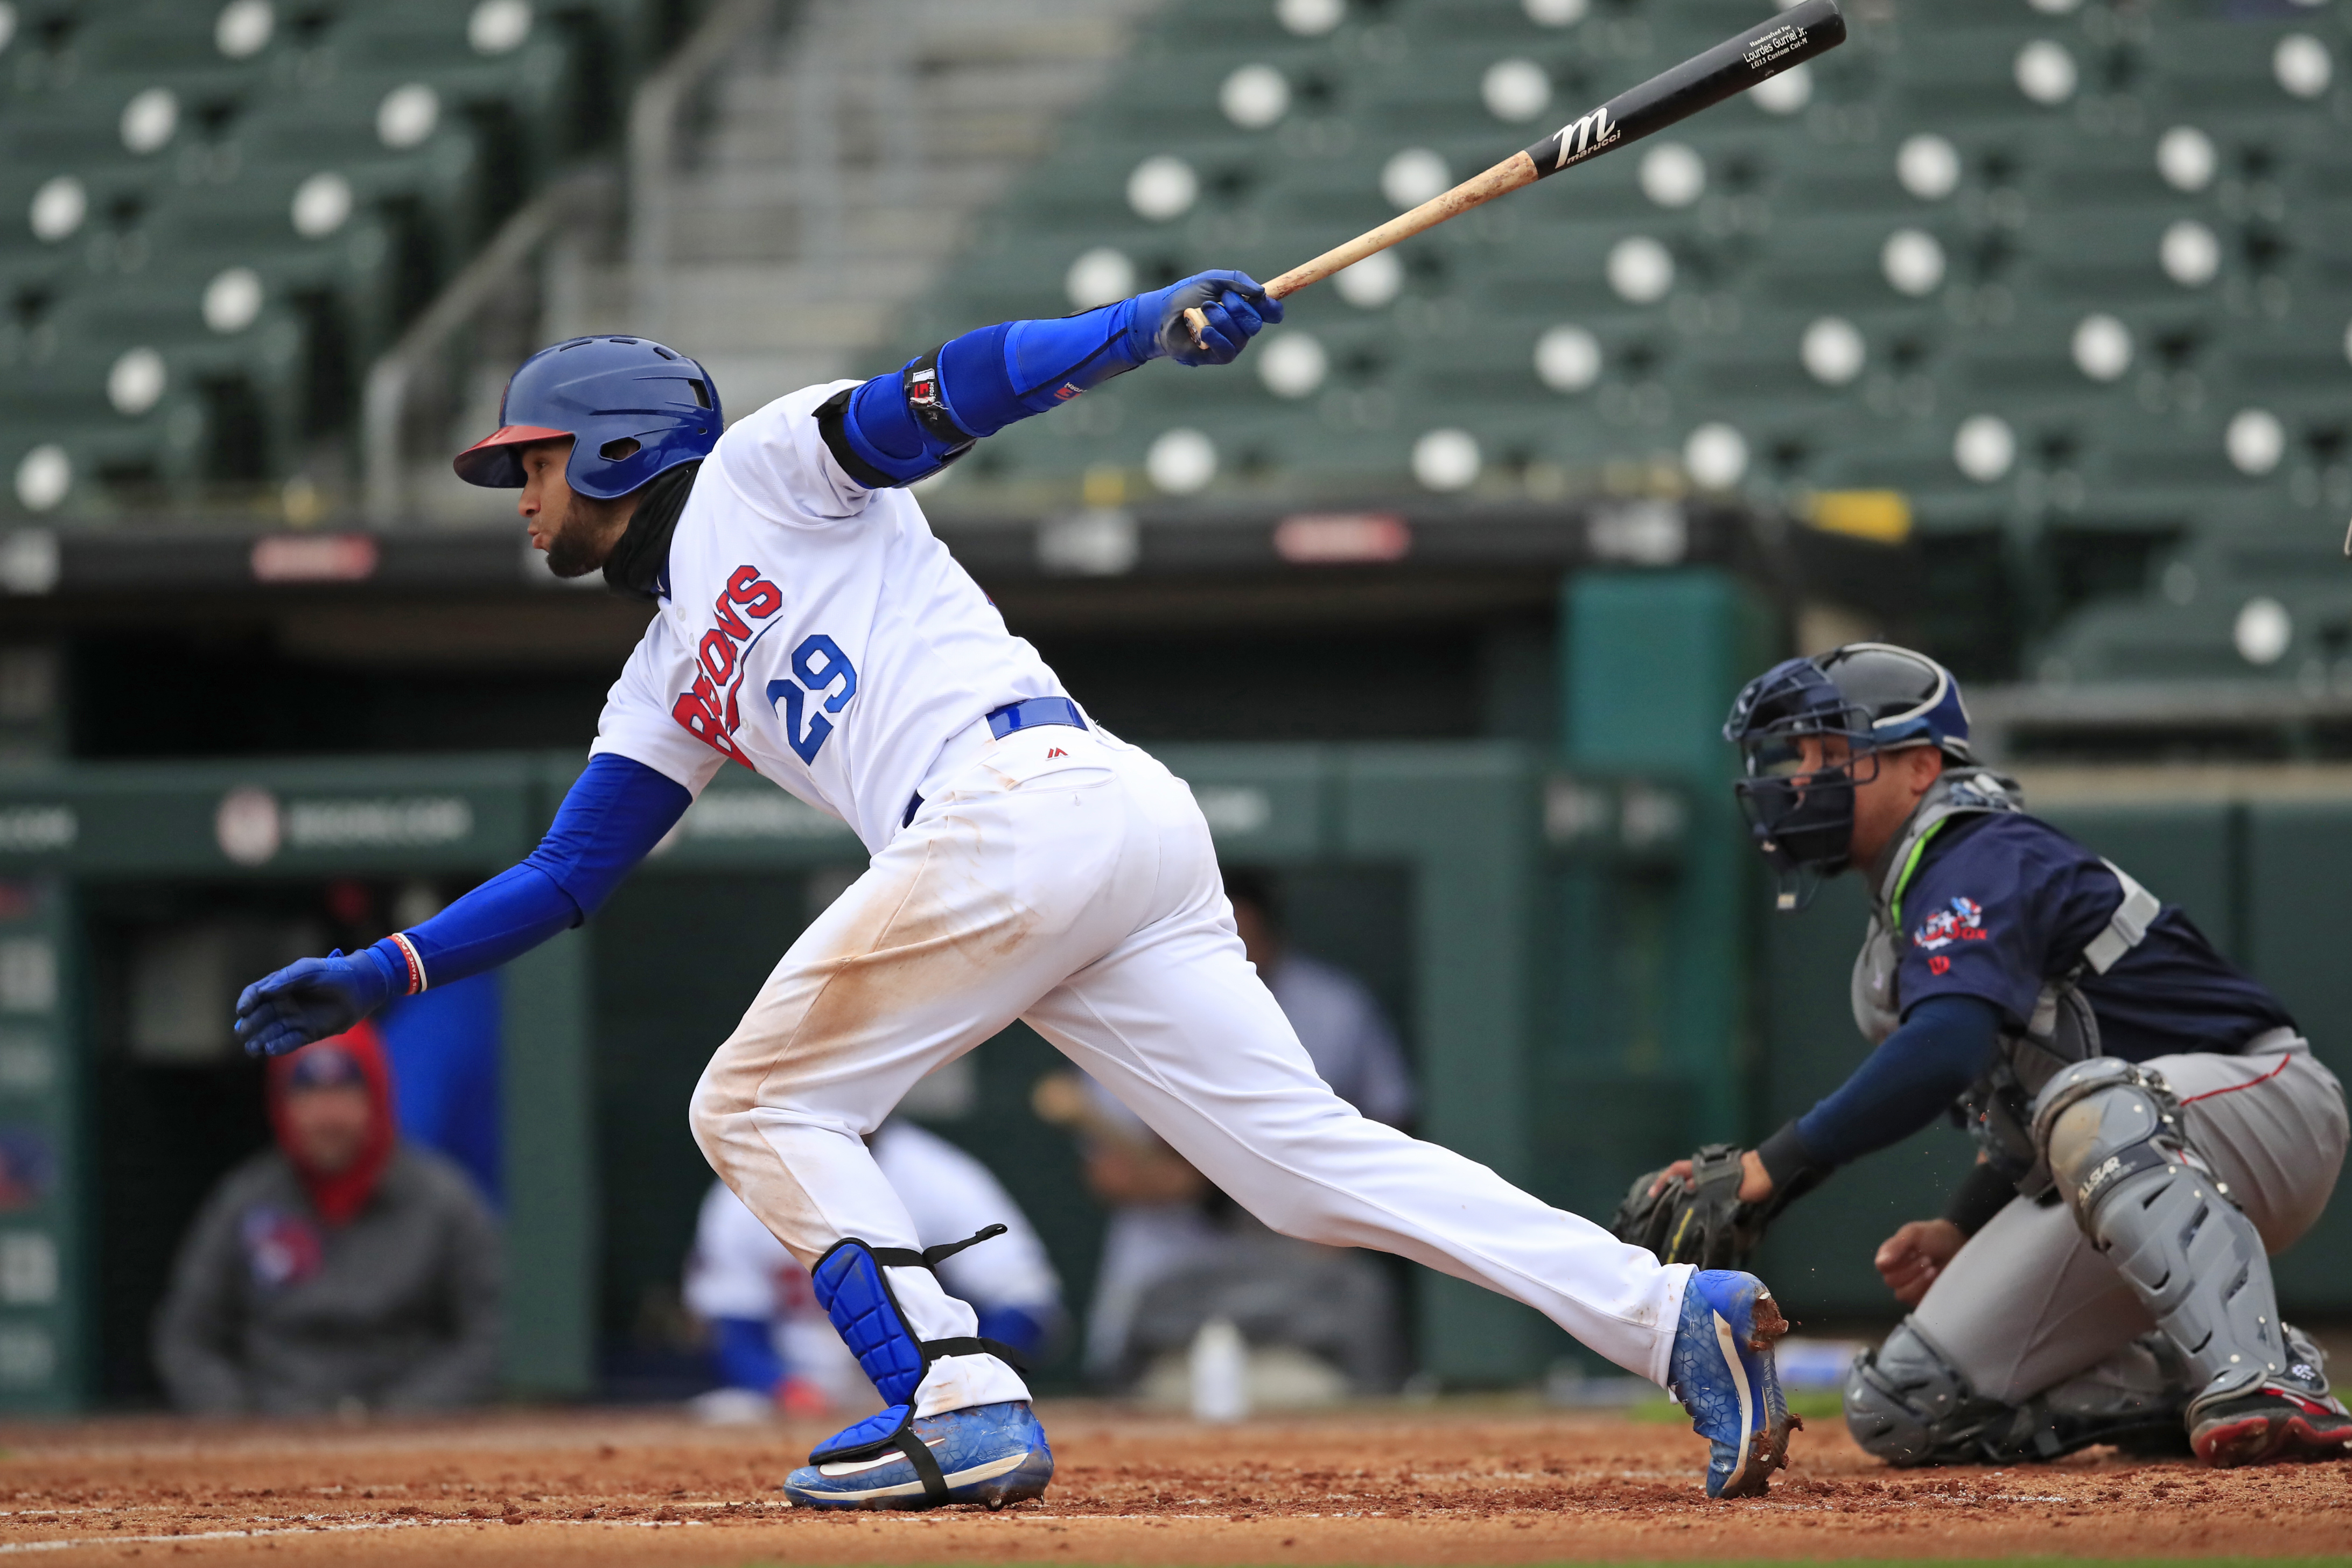 buffalo bisons-lourdes gurriel jr-milb-toronto blue jays-mlb-2019